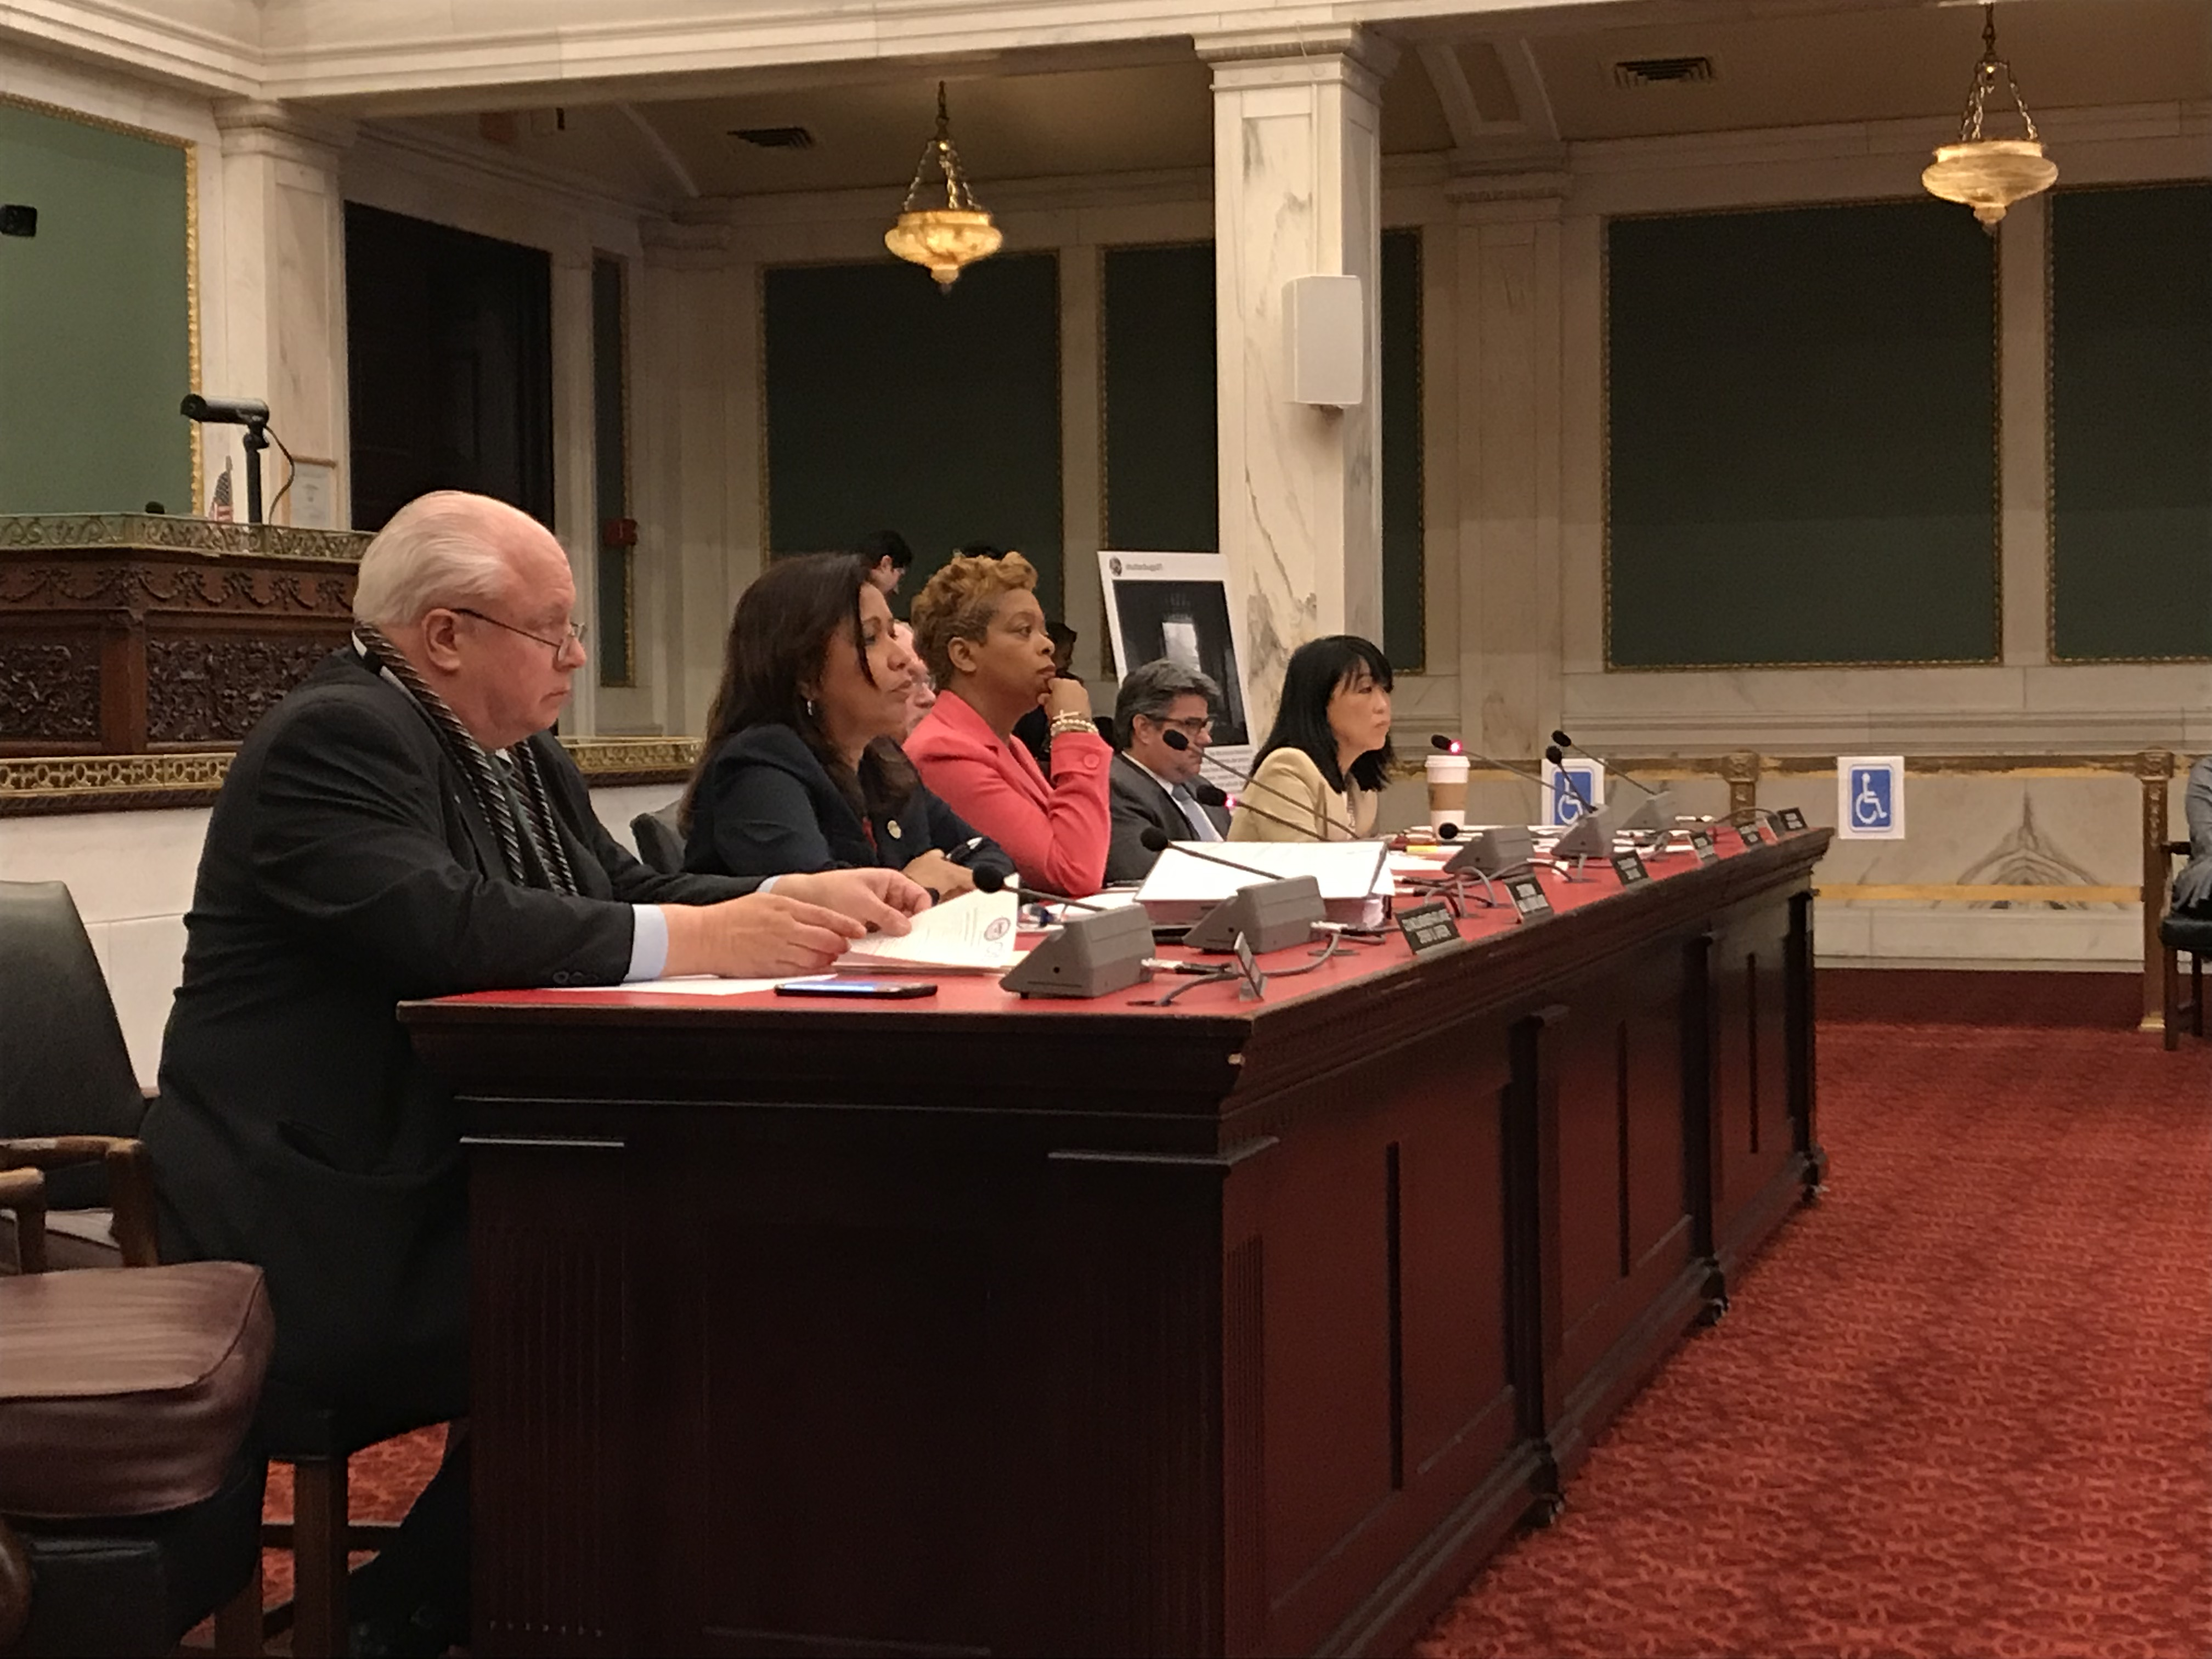 Council members on the Public Health & Human Services Committee listen to testimony at a hearing on the opioid crisis.